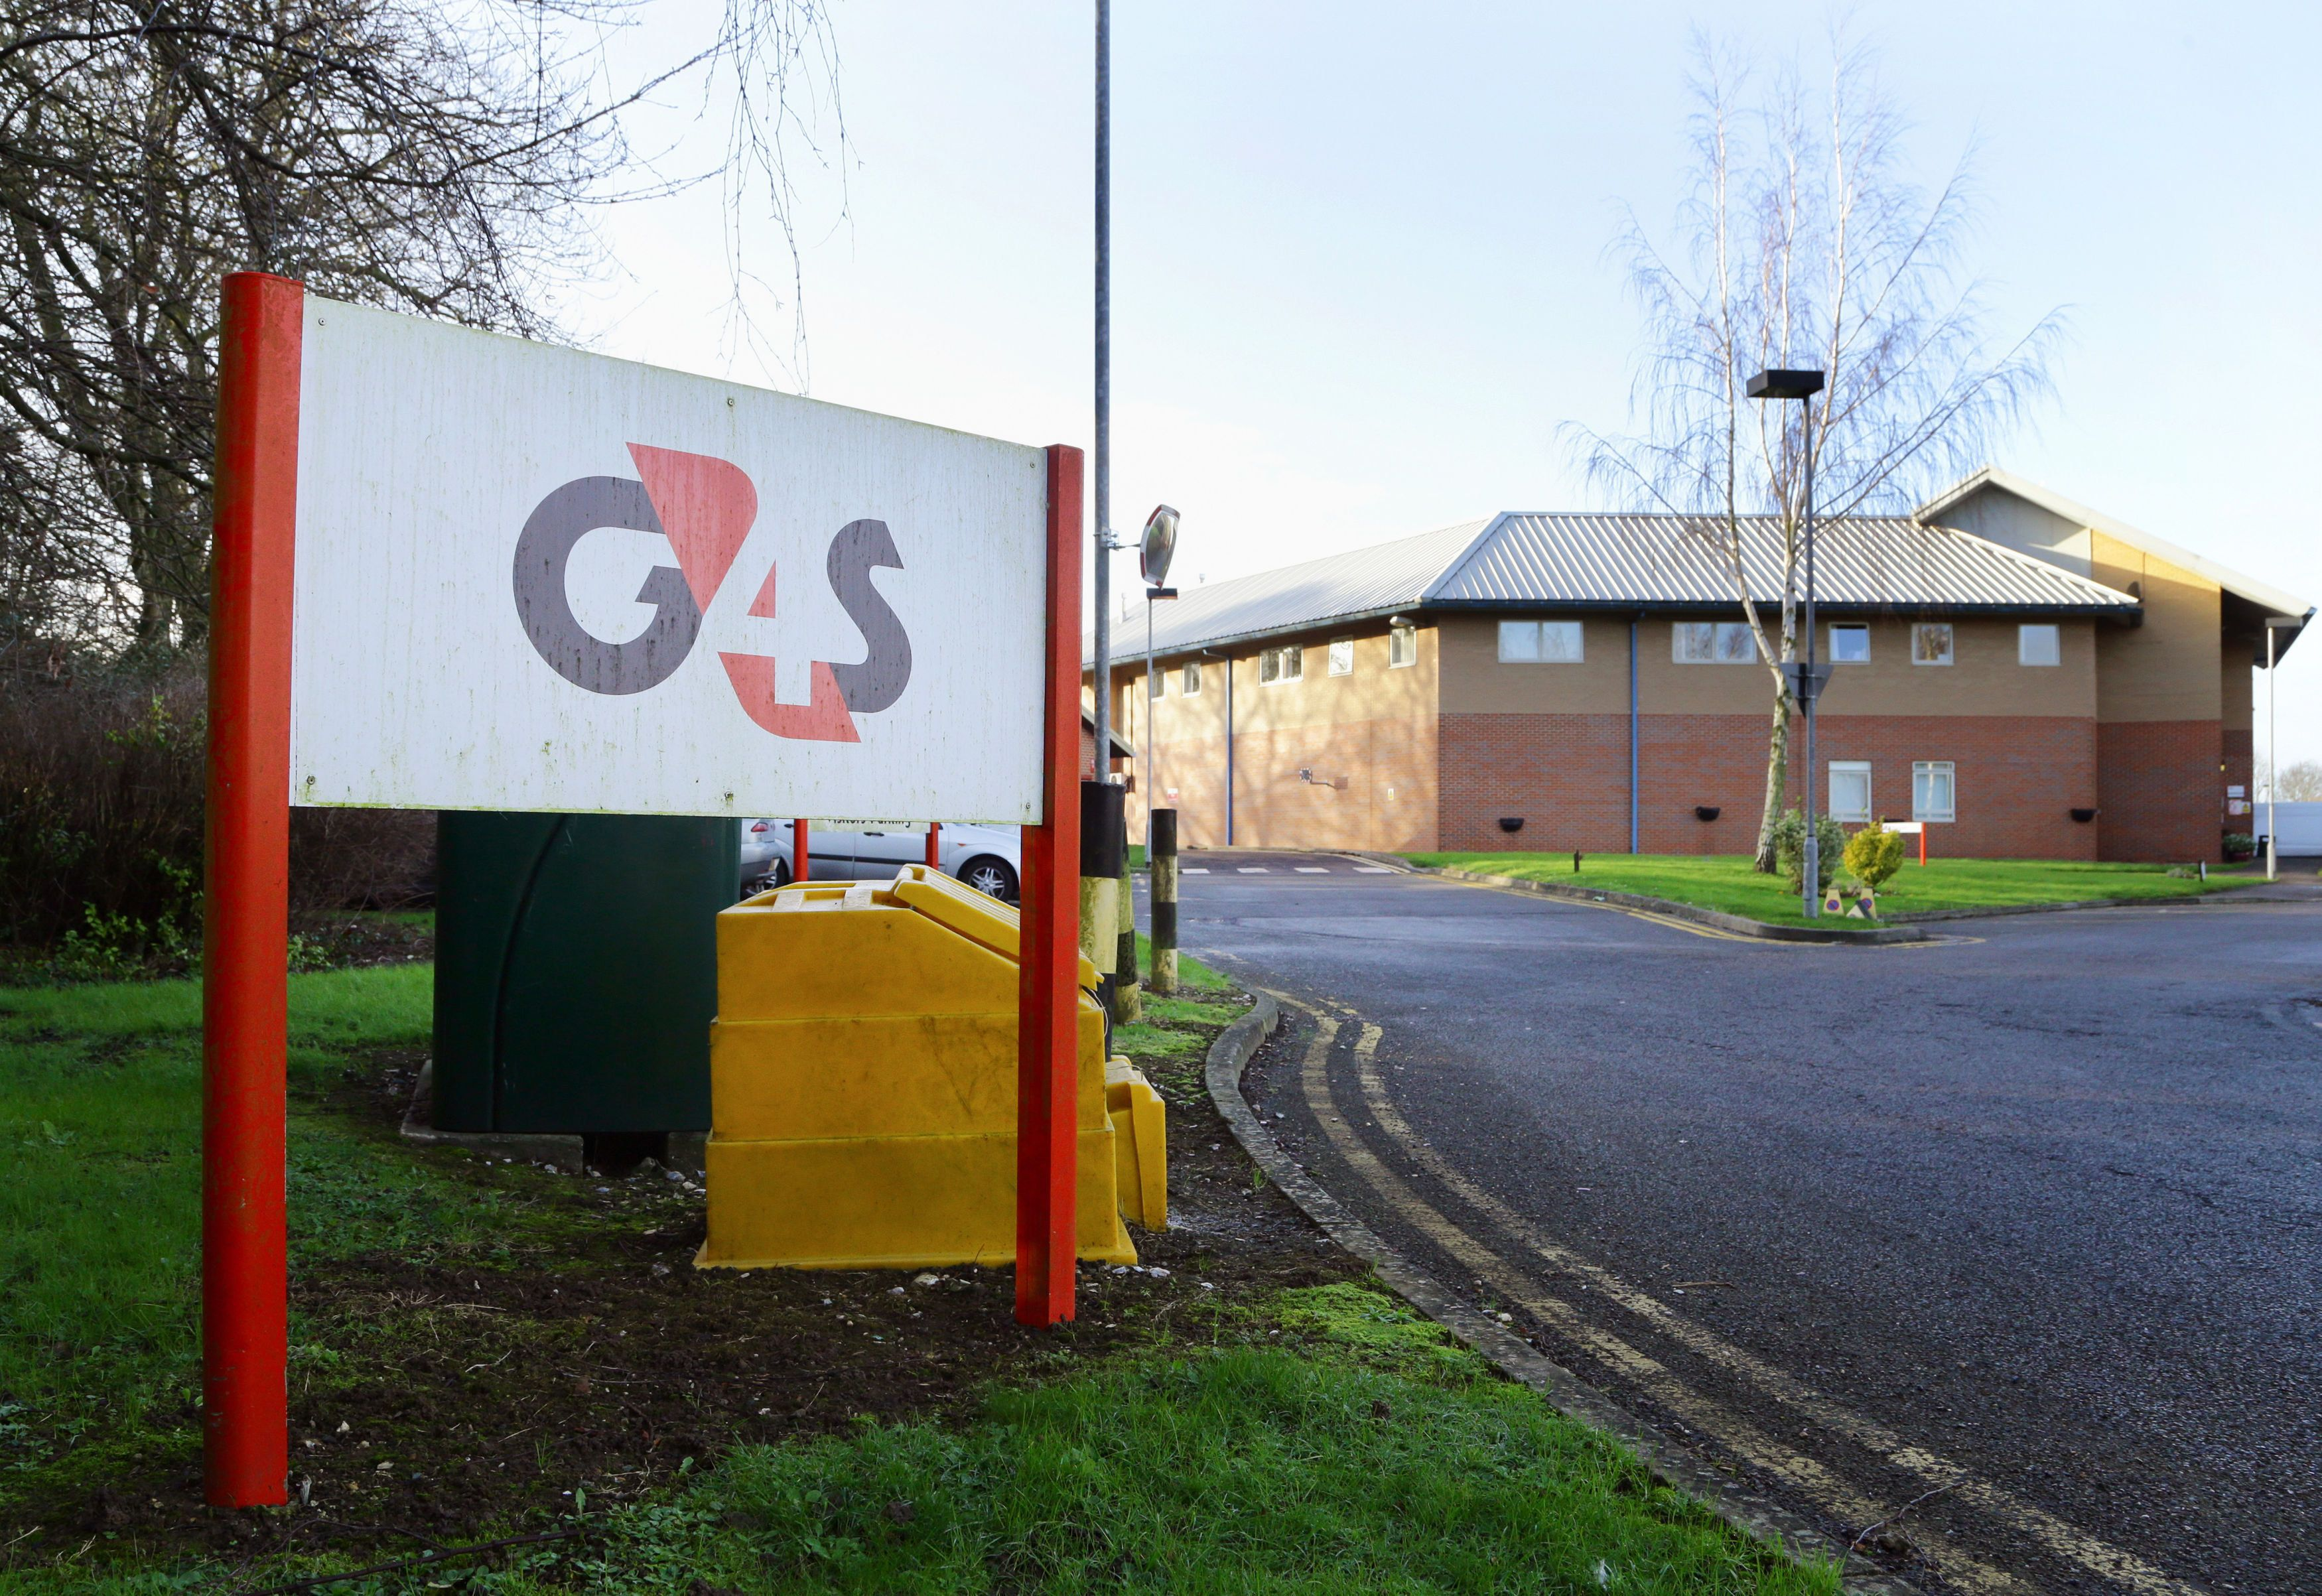 Medway Secure Training Centre was the subject of an earlier G4S